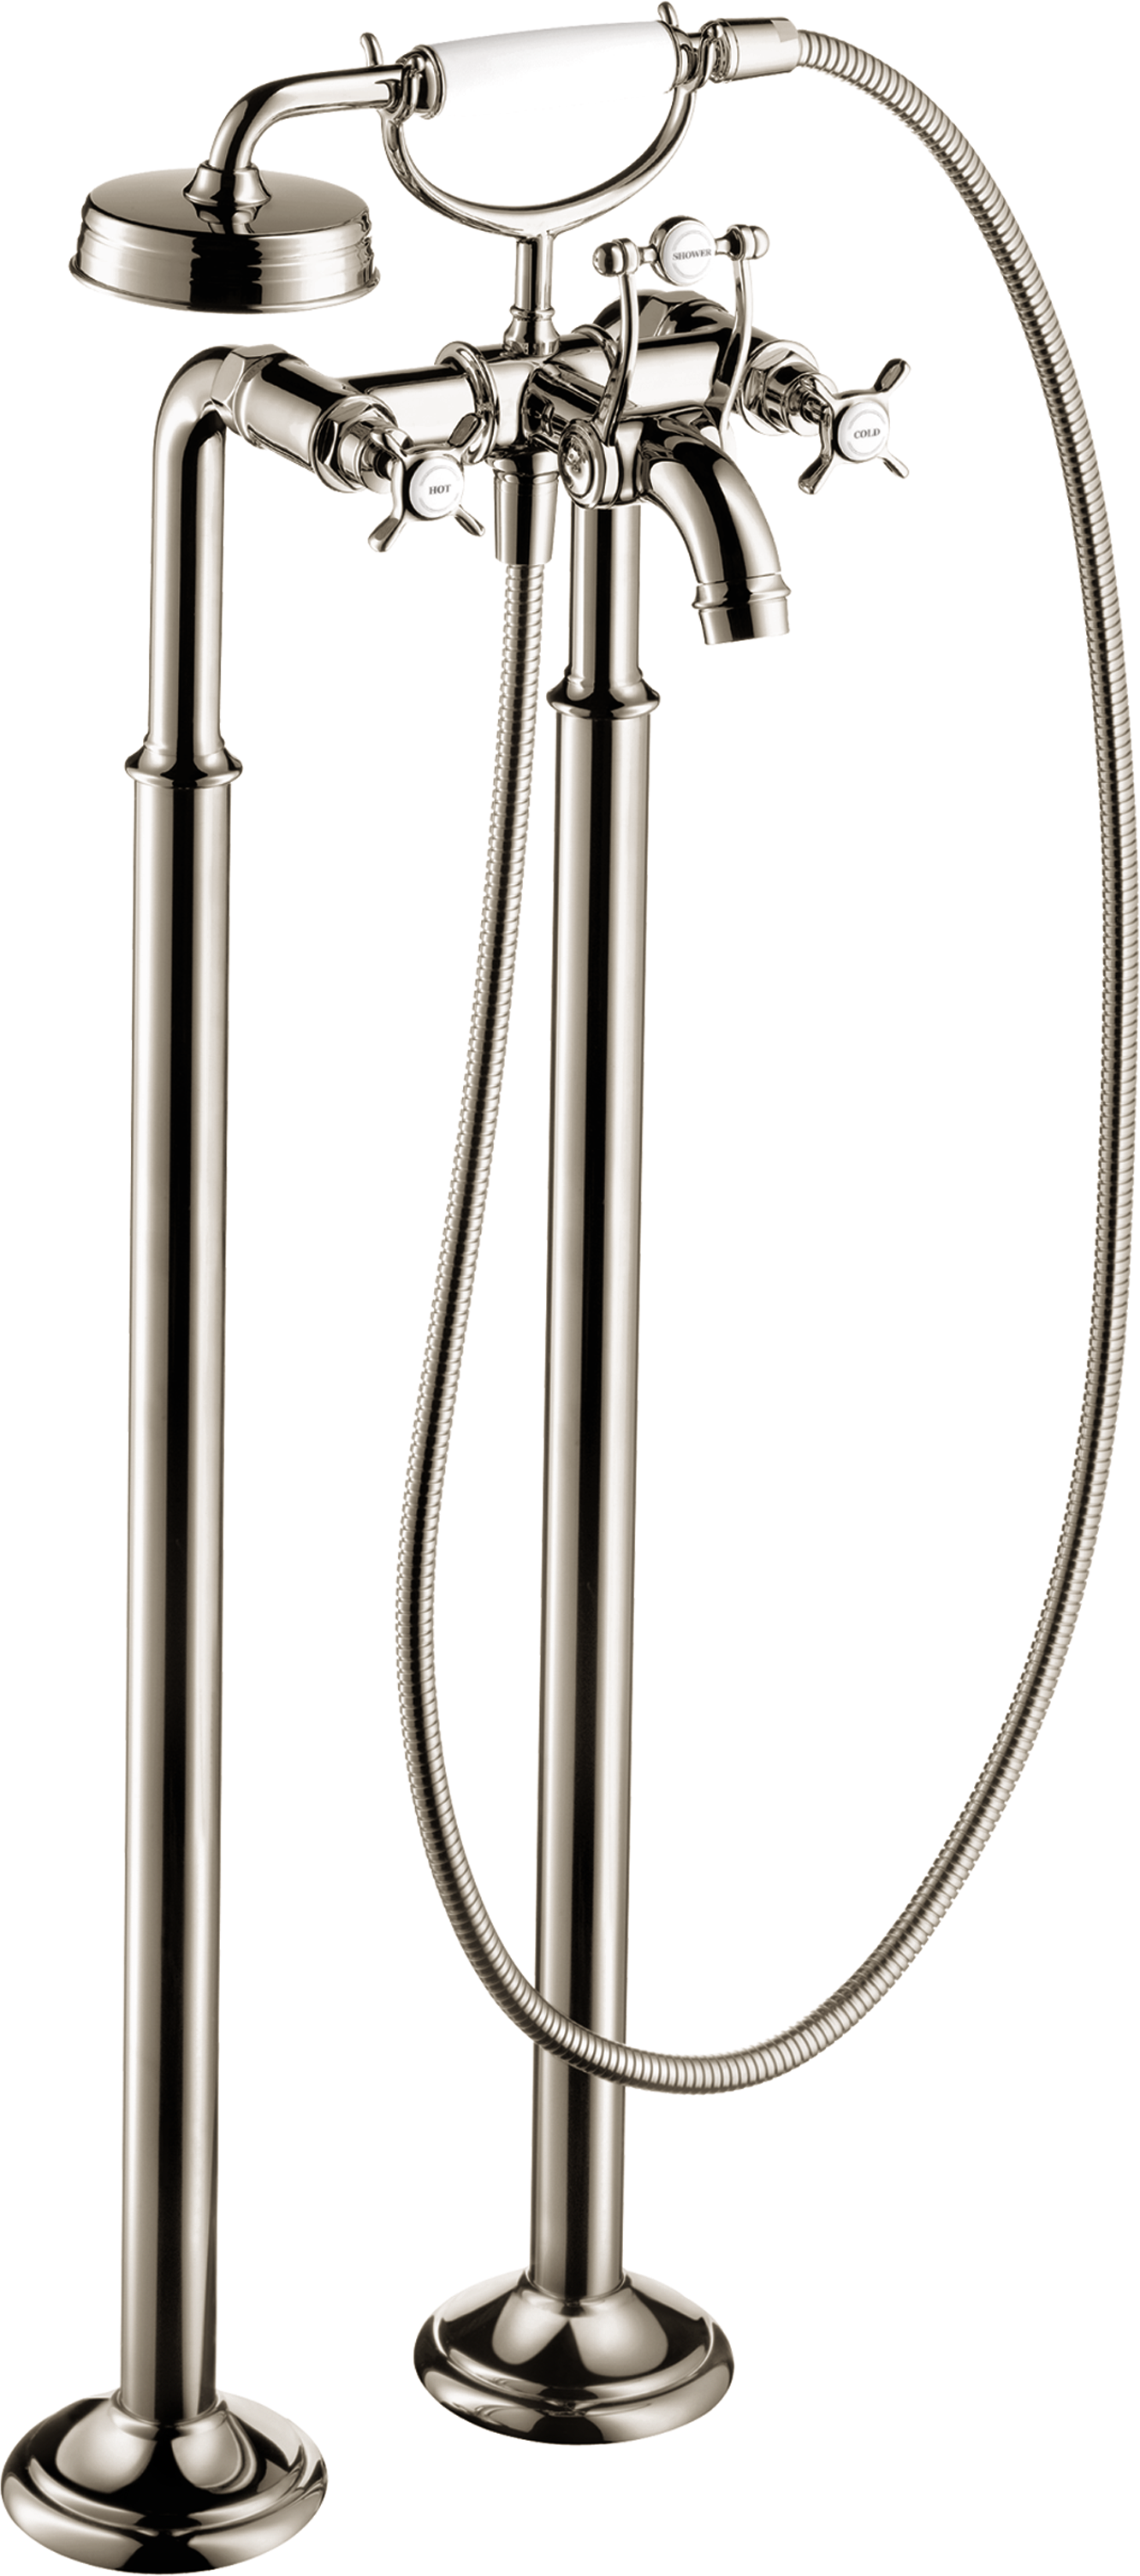 Axor AXOR Montreux Freestanding 2-Handle Tub Filler Trim with Cross Handles with 2.0 GPM Handshower